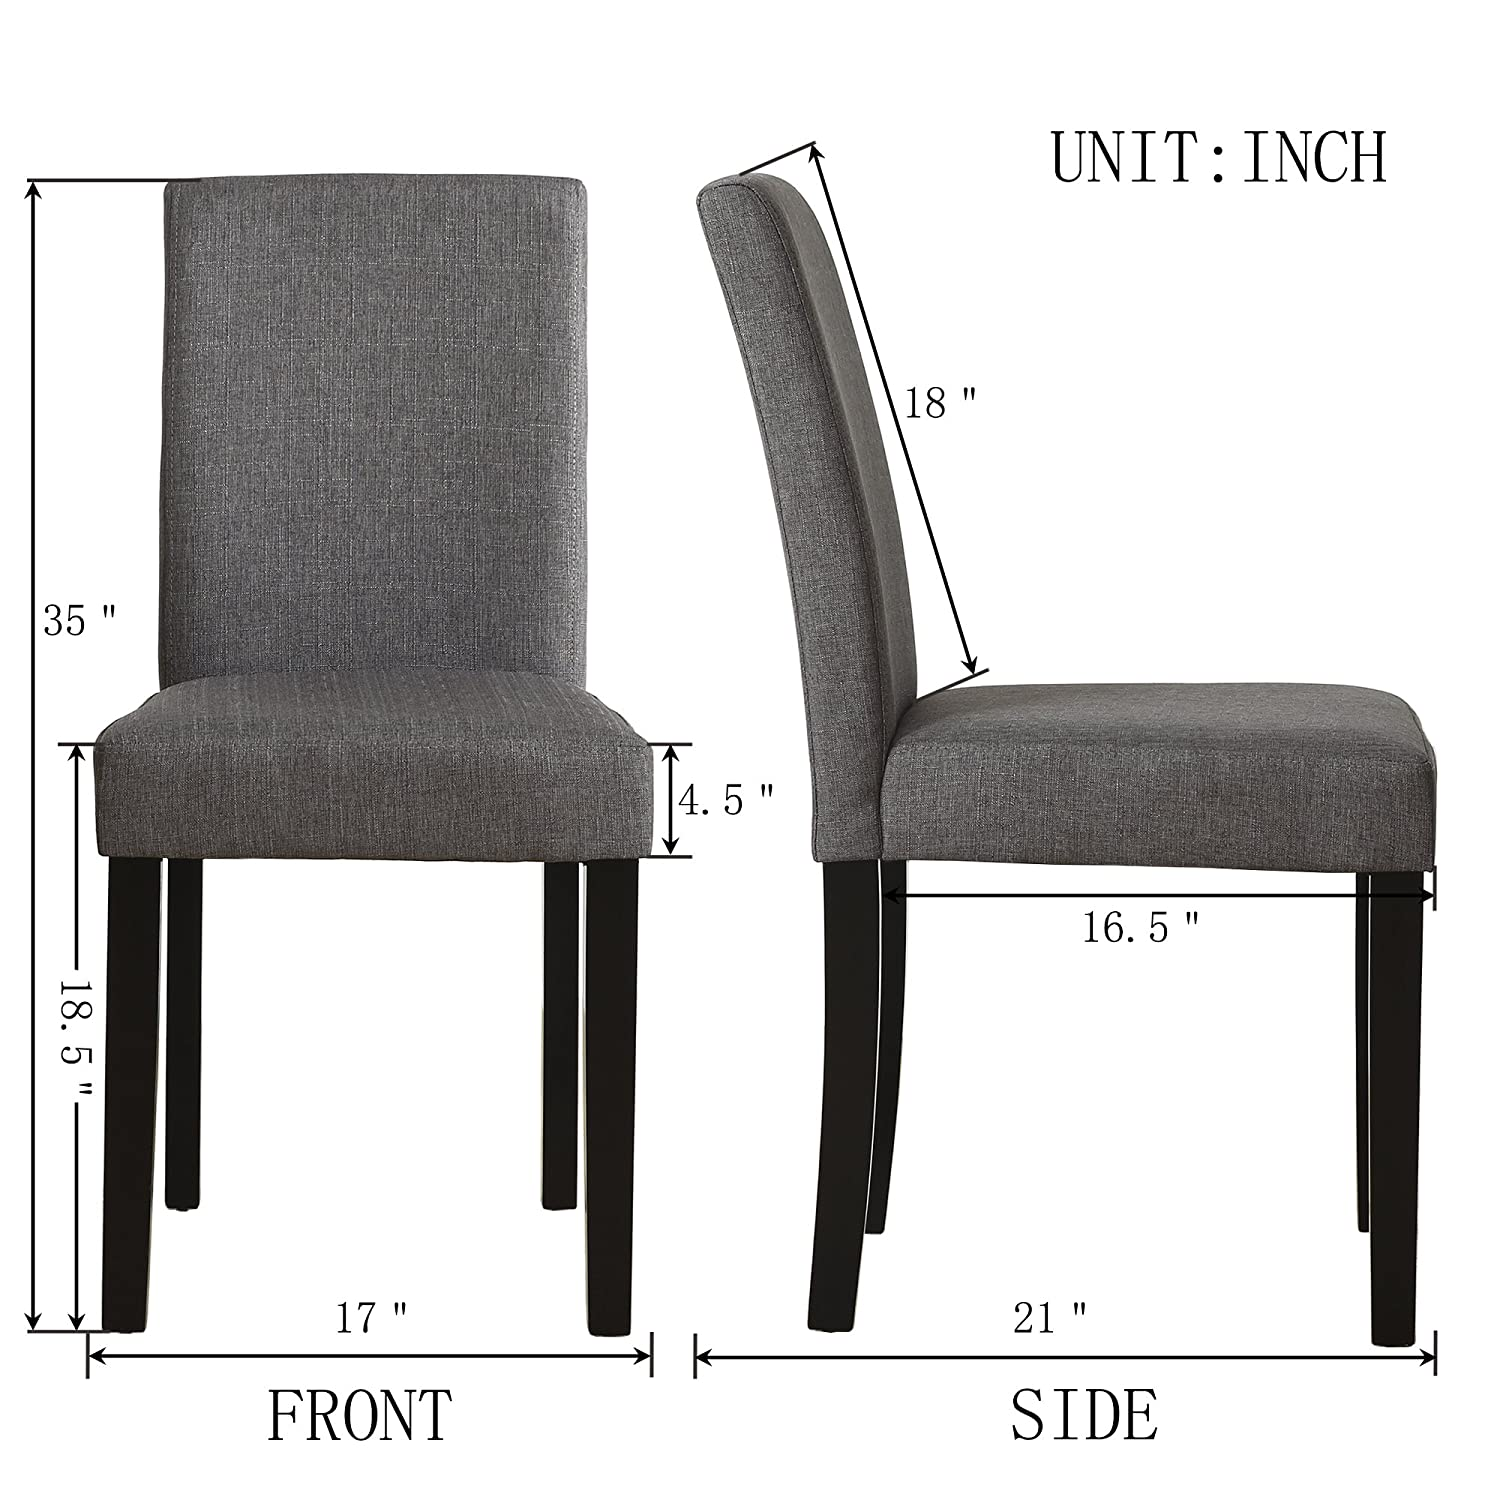 Set of 4 Modern Fabric Upholstered Dining Chairs Elegant Design Dining Room Chairs Gray Set of 4